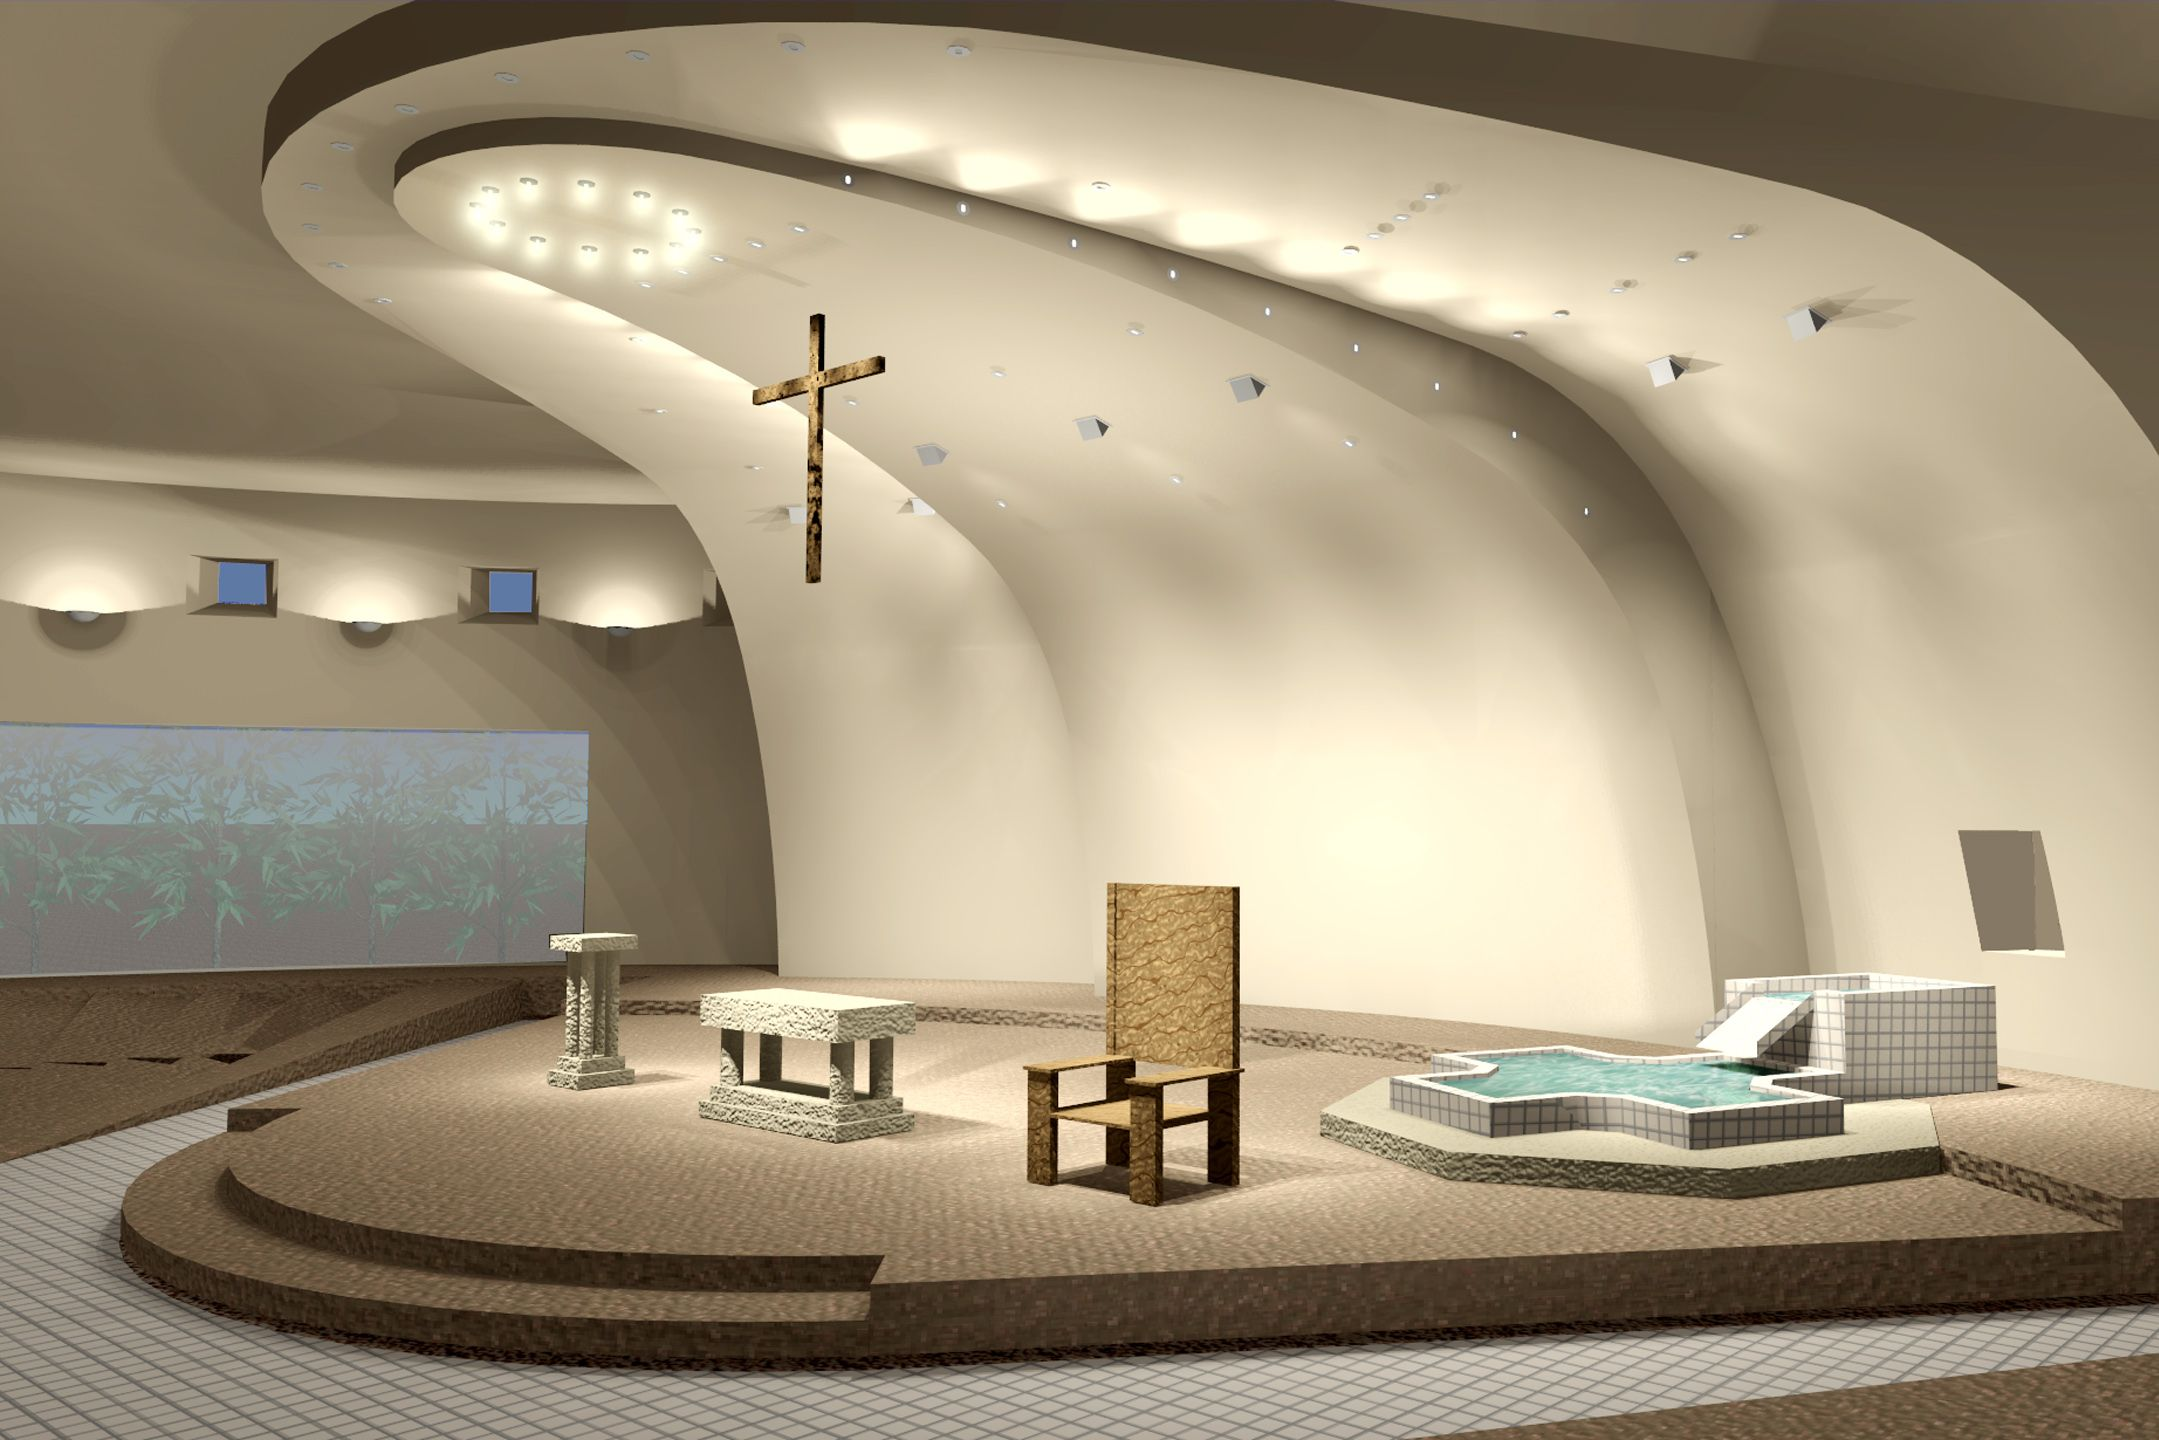 Church Interior Design Ideas church sanctuary design construction 18 Best Photos Of Contemporary Church Interior Design Small Japanese Interior Design Interior Design